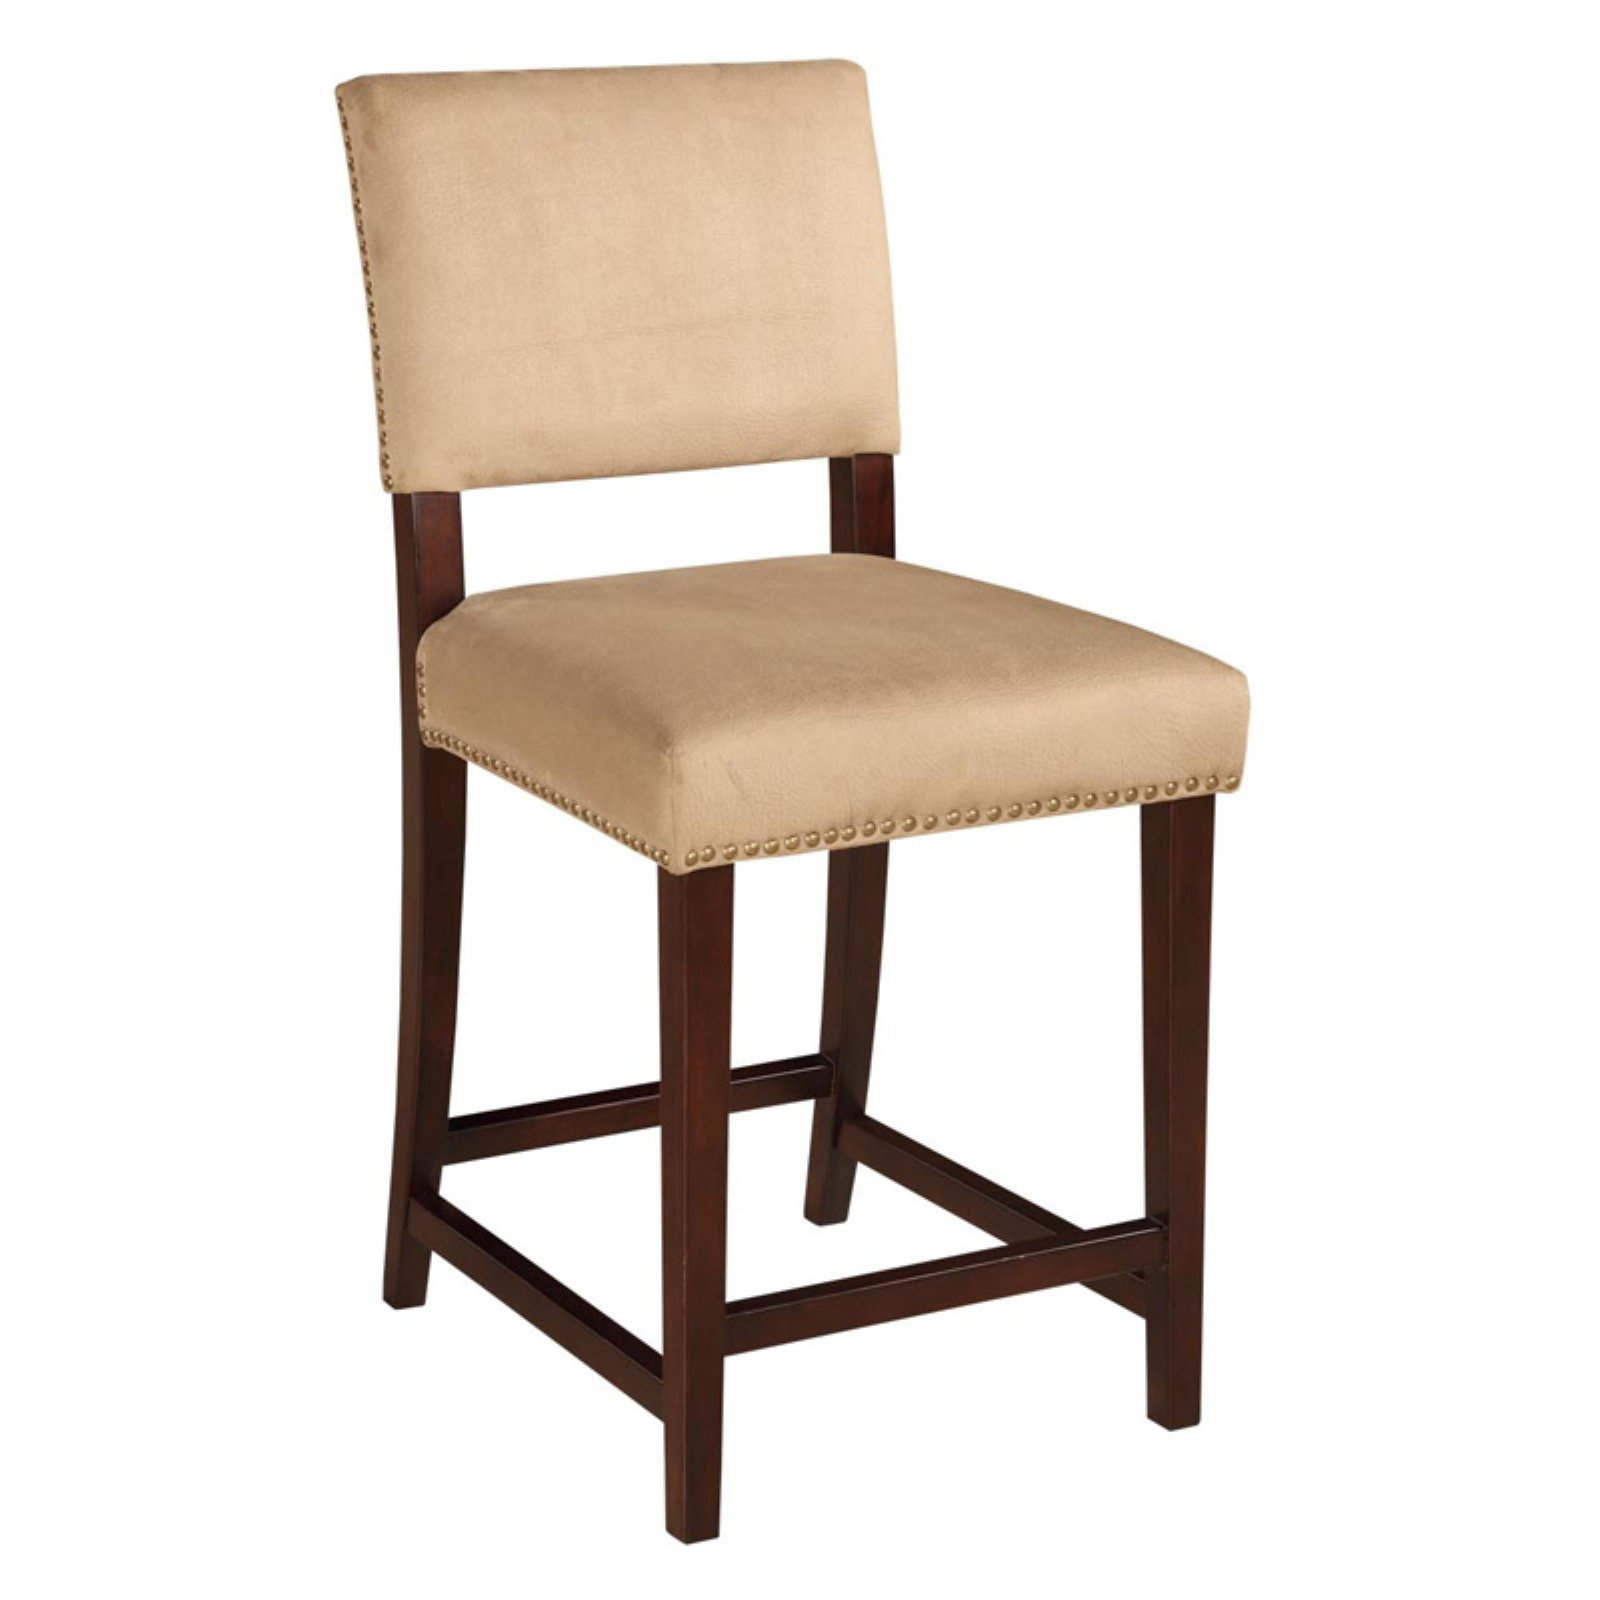 Linon Corey Bar Stool, Stone, 30 inch Seat Height